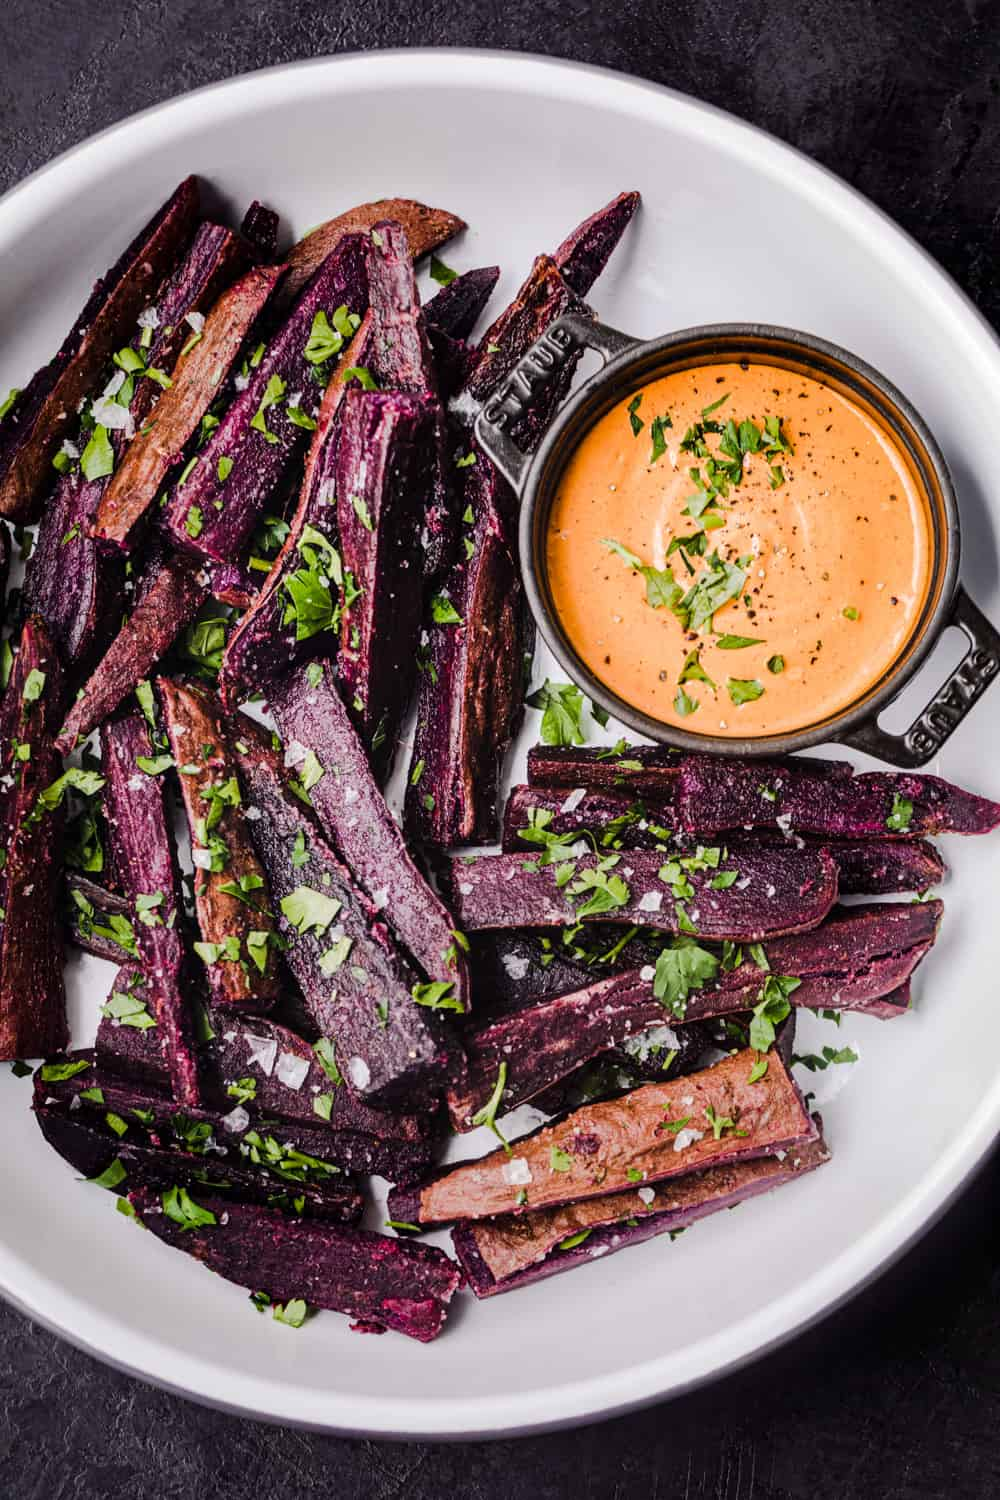 Purple sweet potato wedges in a white bowl served with chipotle aioli and sprinkled with salt, pepper, and parsley.